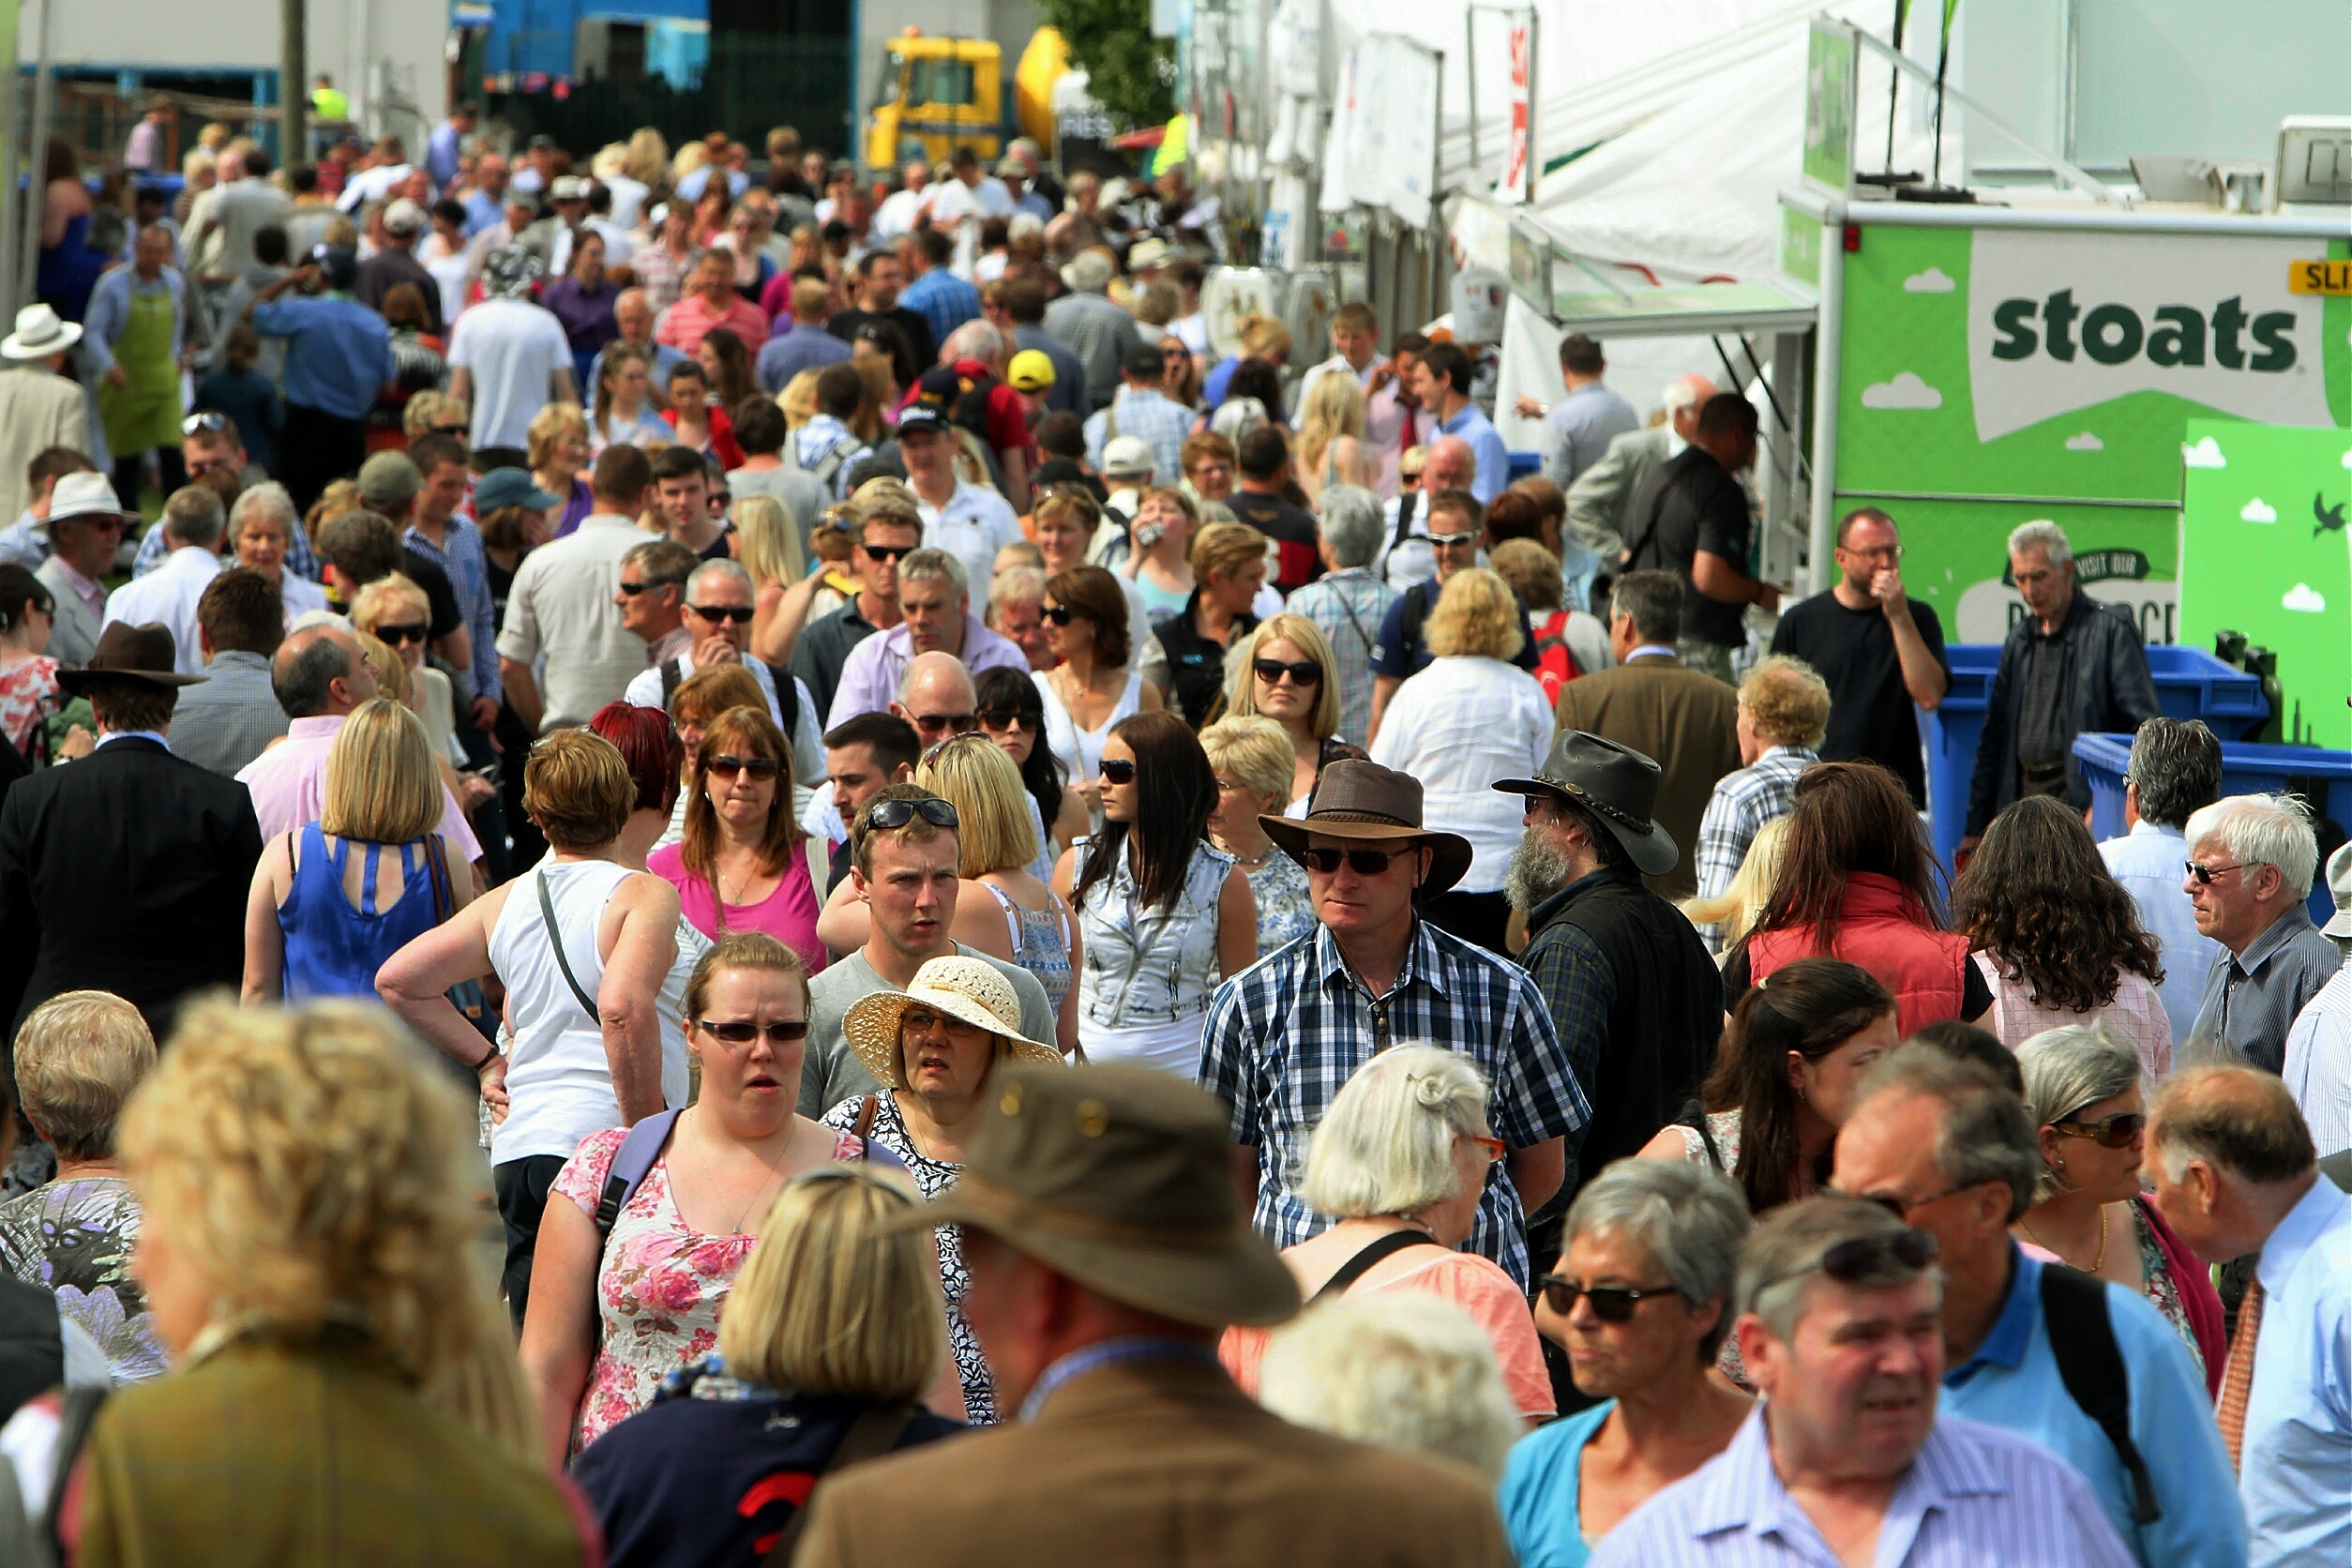 Keeping visitors safe is a priority for the Highland Show organisers